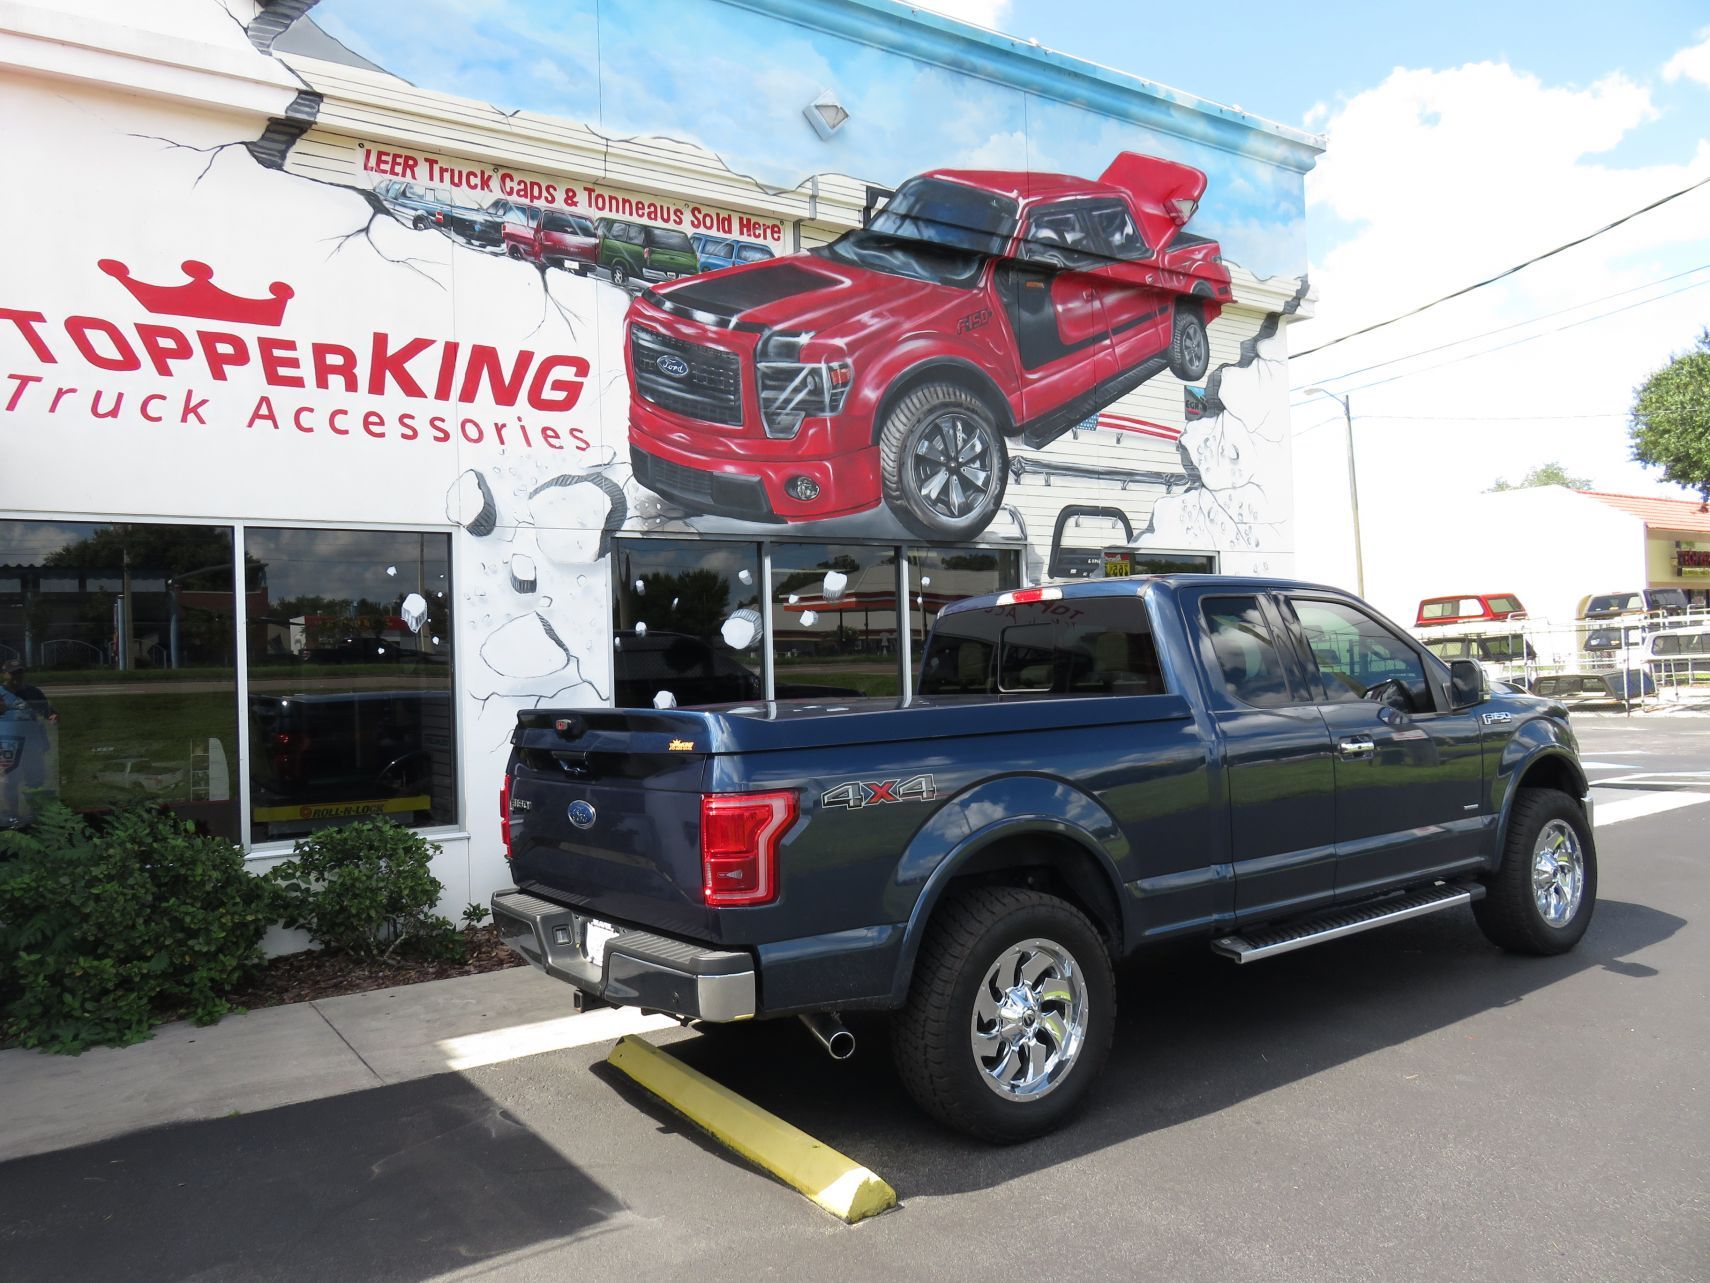 2017 Blue Ford F150 Leer 750 Sport, Chrome, Tint, Running boards, Custom Hitch by TopperKING in Brandon, FL 813-689-2449 or Clearwater, FL 727-530-9066.